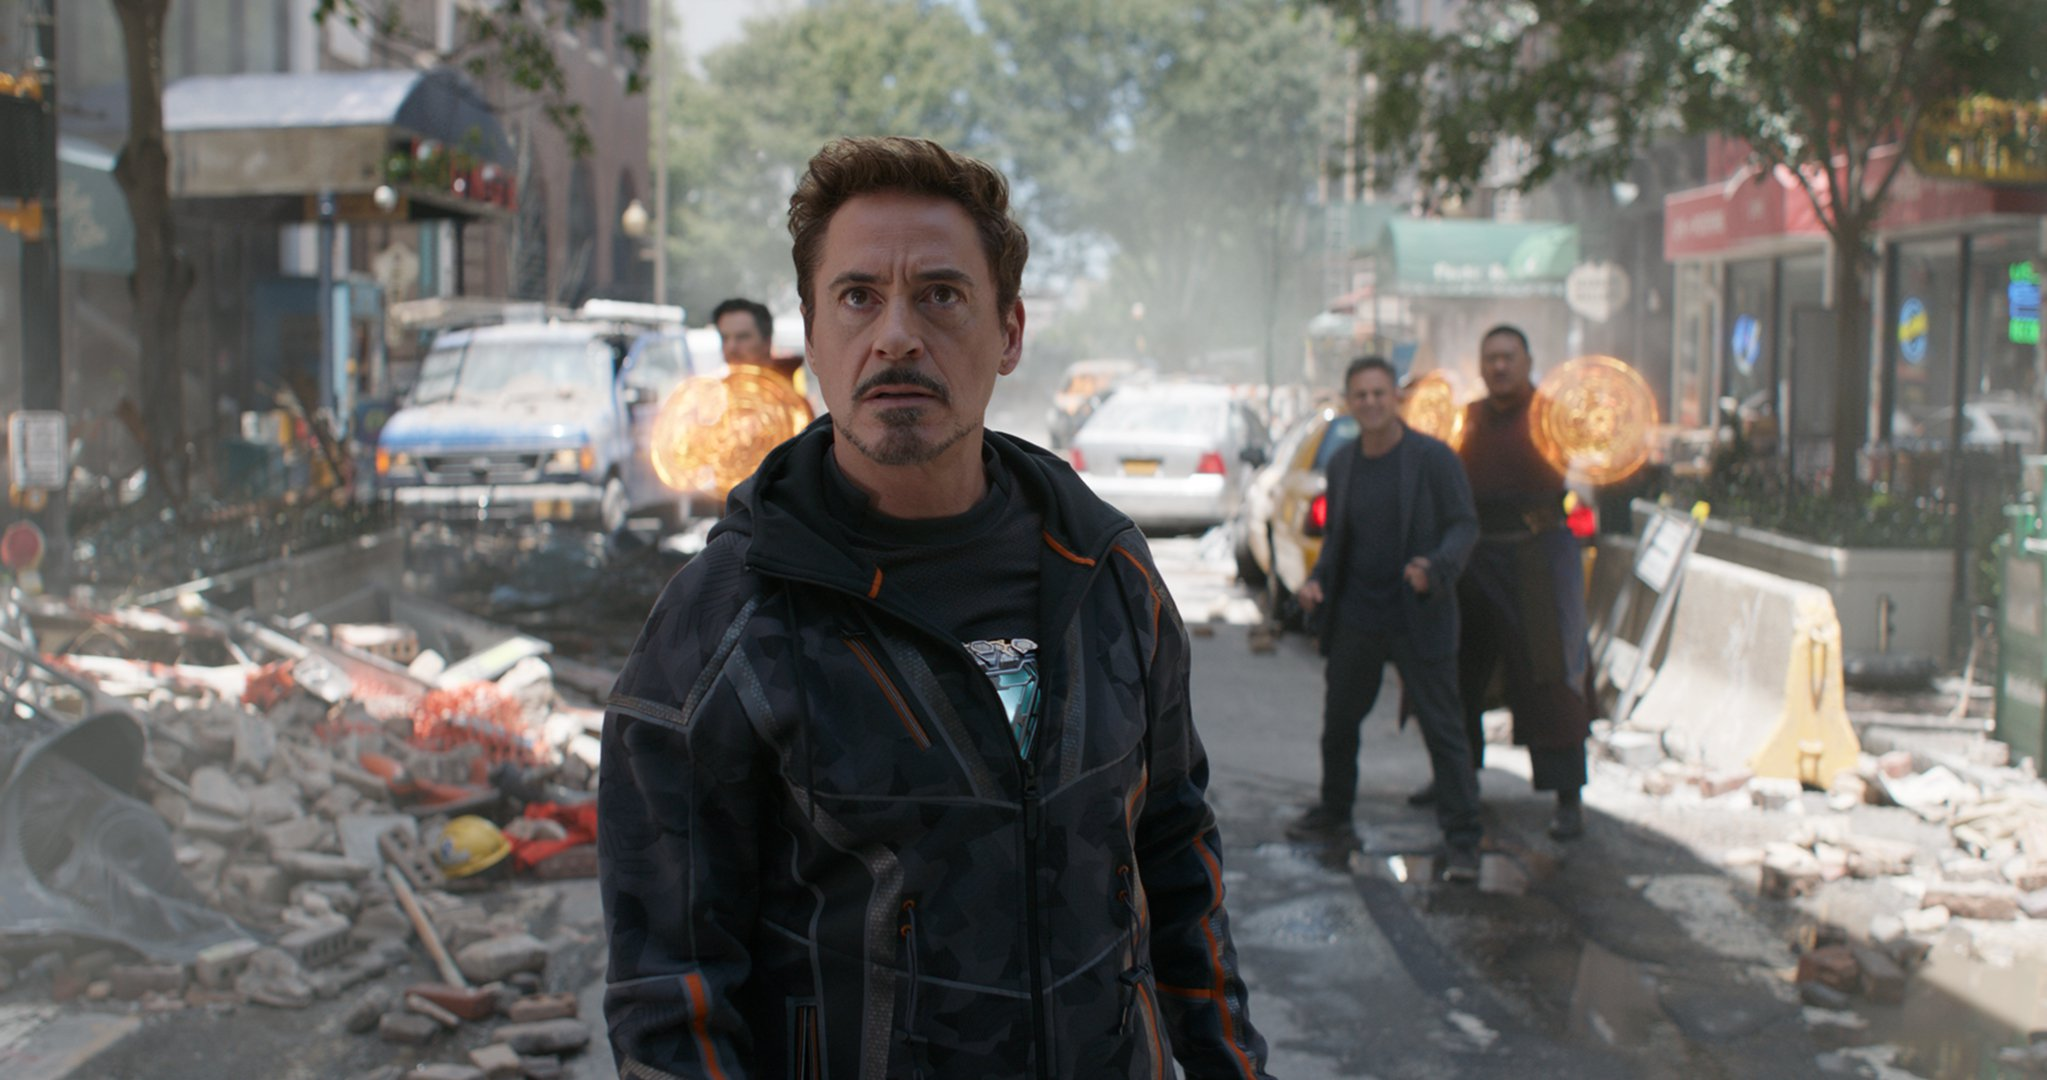 Robert Downey Jr revealed the title of Avengers: Endgame before Age Of Ultron came out